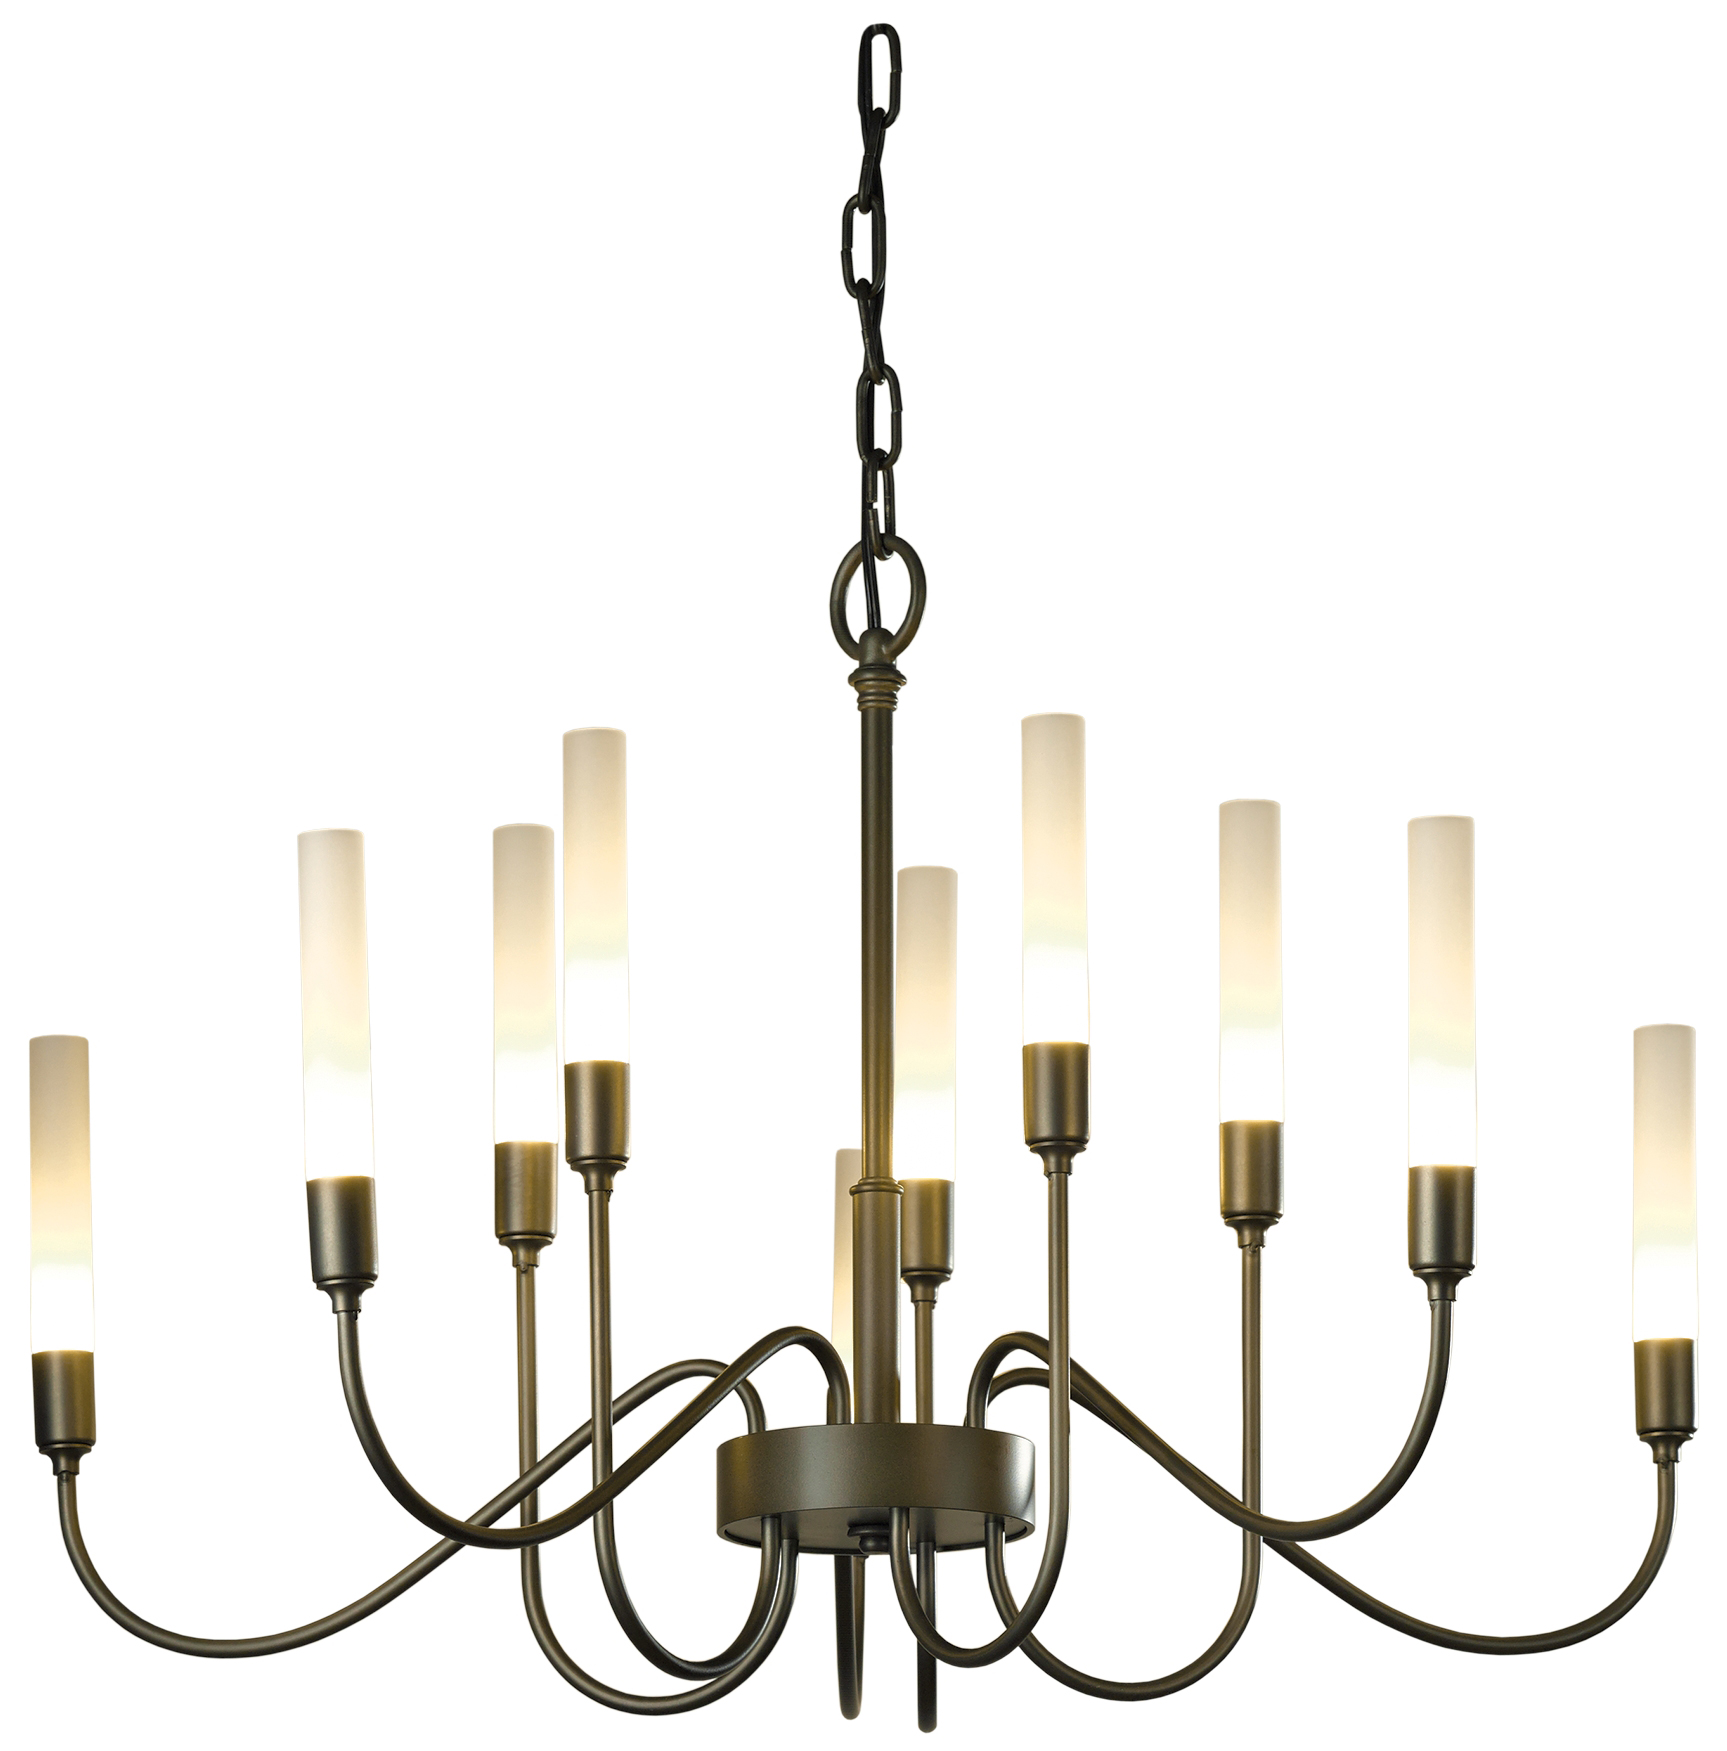 10 arm chandelier by hubbardton forge 106030 07 no lisse 10 arm chandelier by hubbardton forge 106030 07 no arubaitofo Choice Image